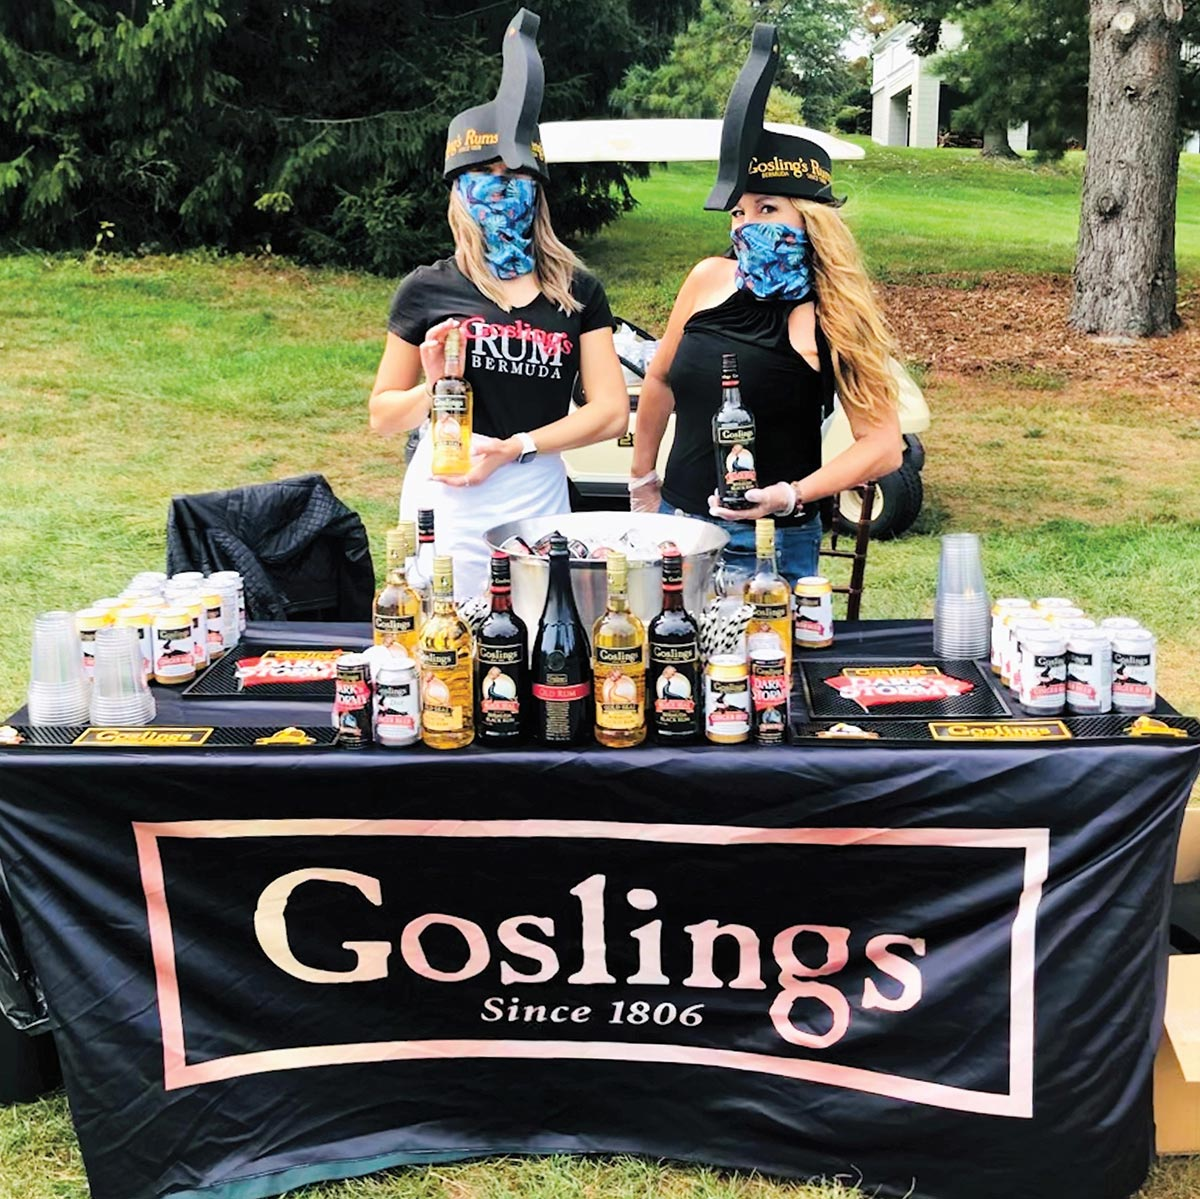 Goslings Rum Showcased at NFL Charity Golf Outing